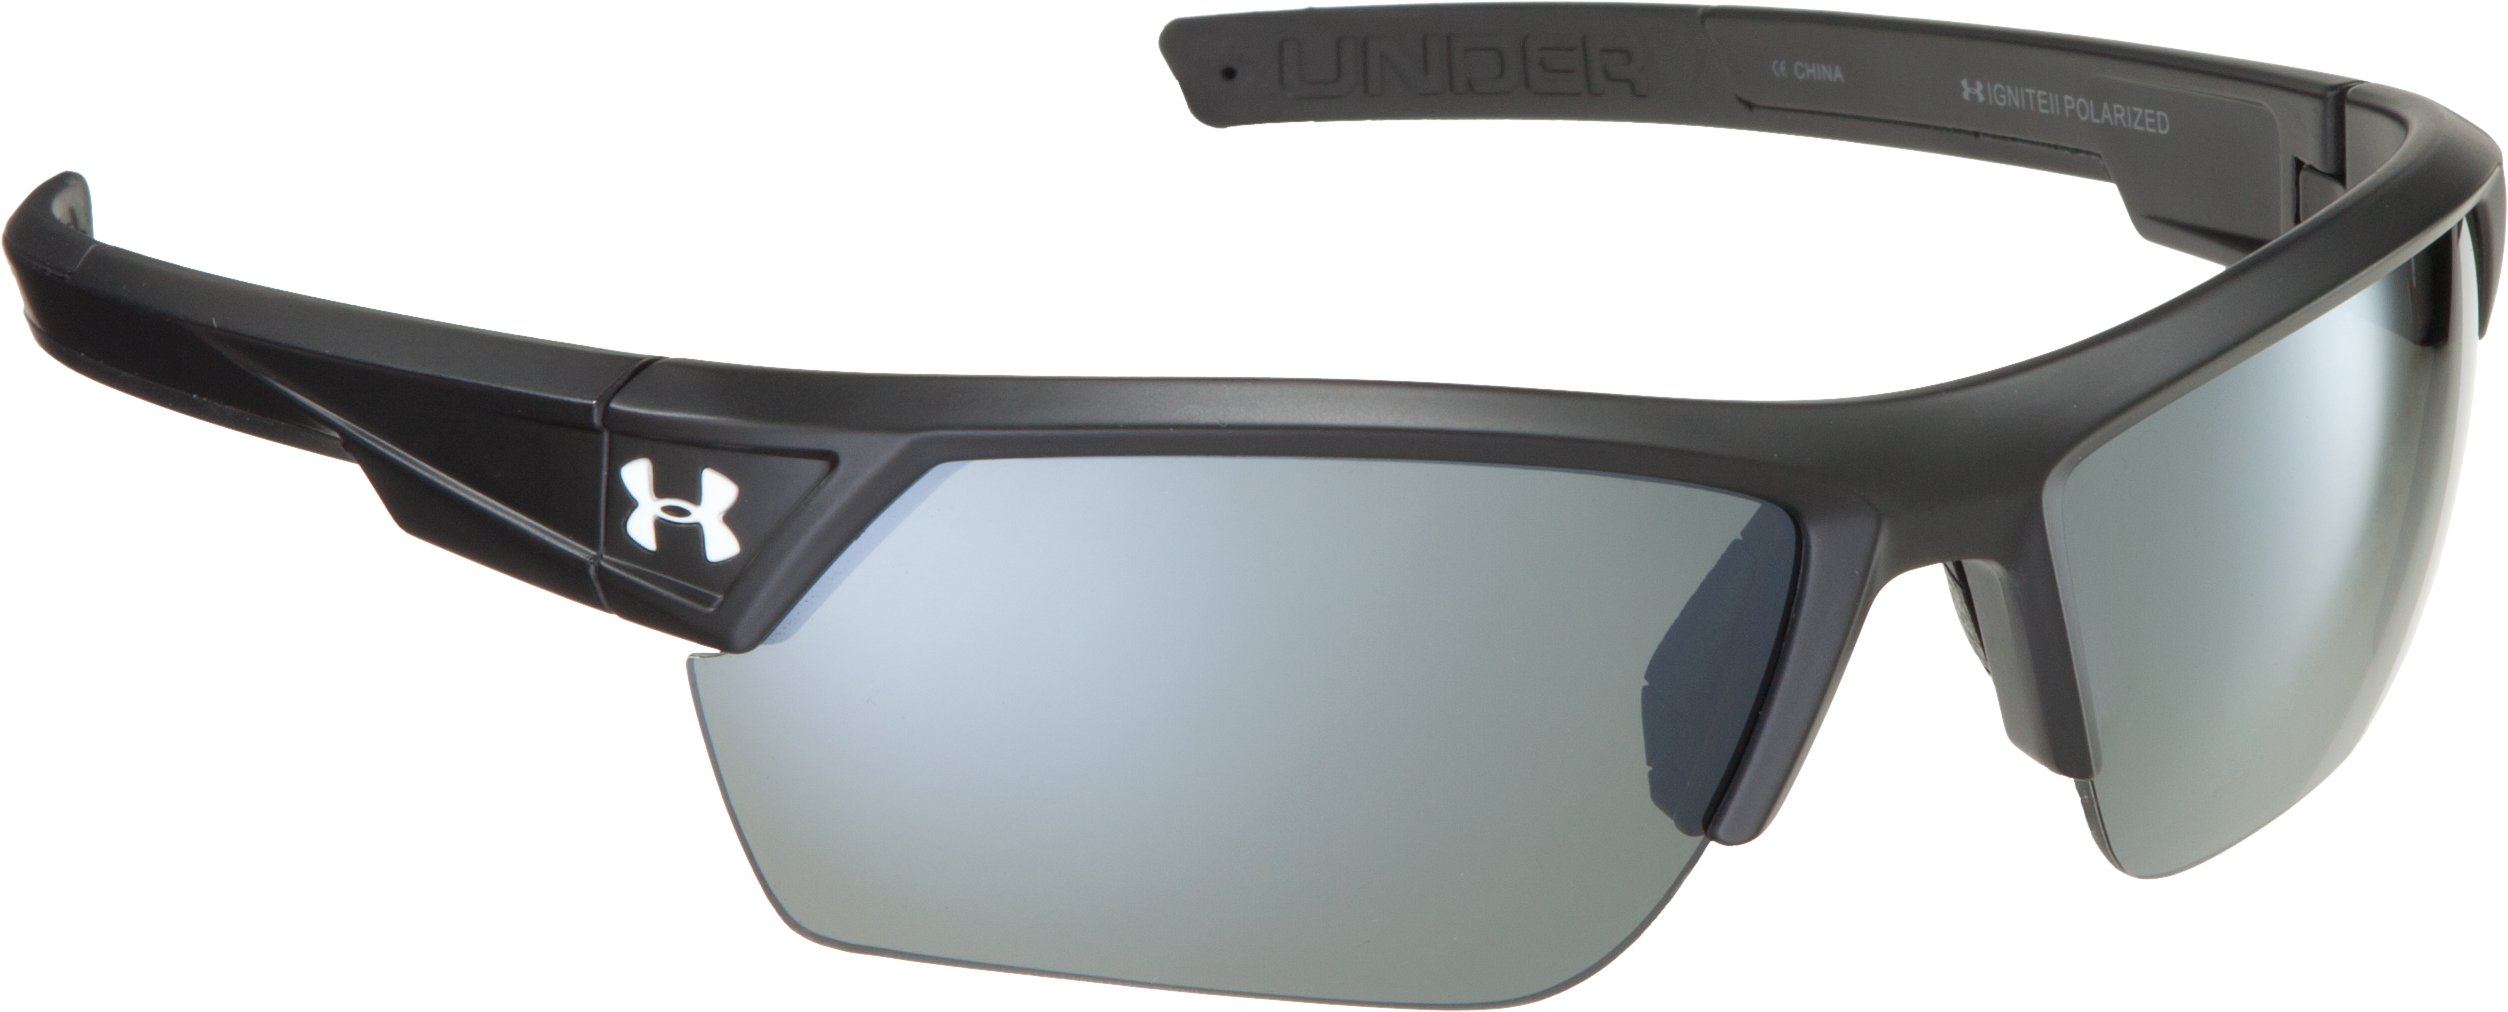 UA Igniter 2.0 Polarized Sunglasses, Satin Black